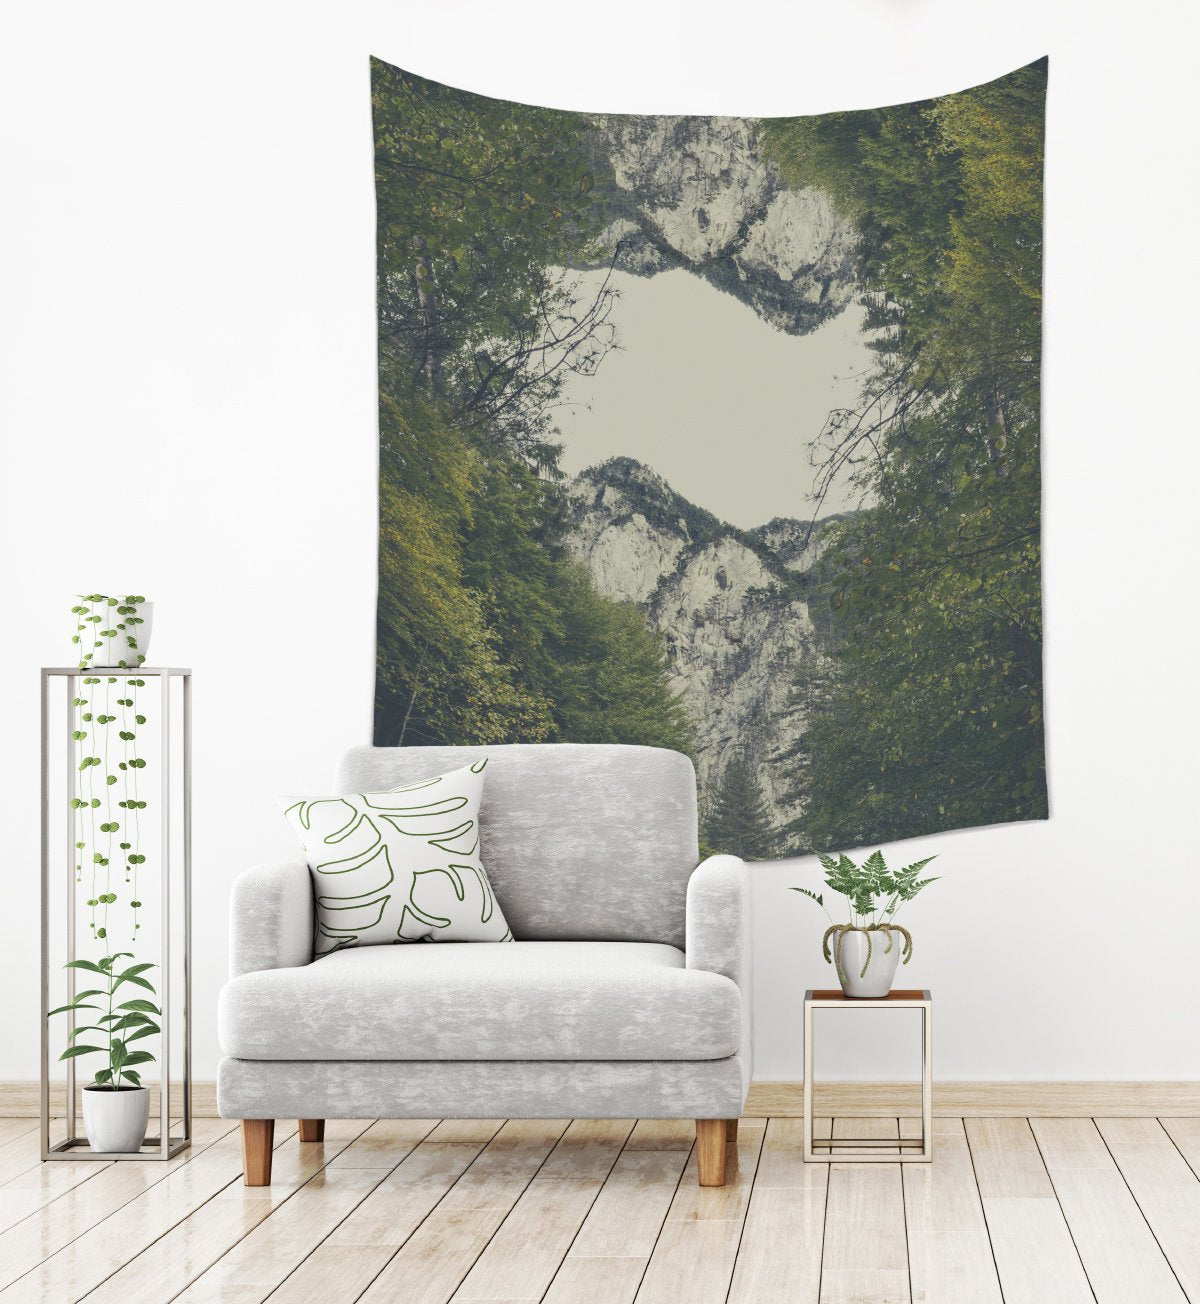 Mountain Photo Tapestry Wall Hanging for Living Room | Brandless Artist